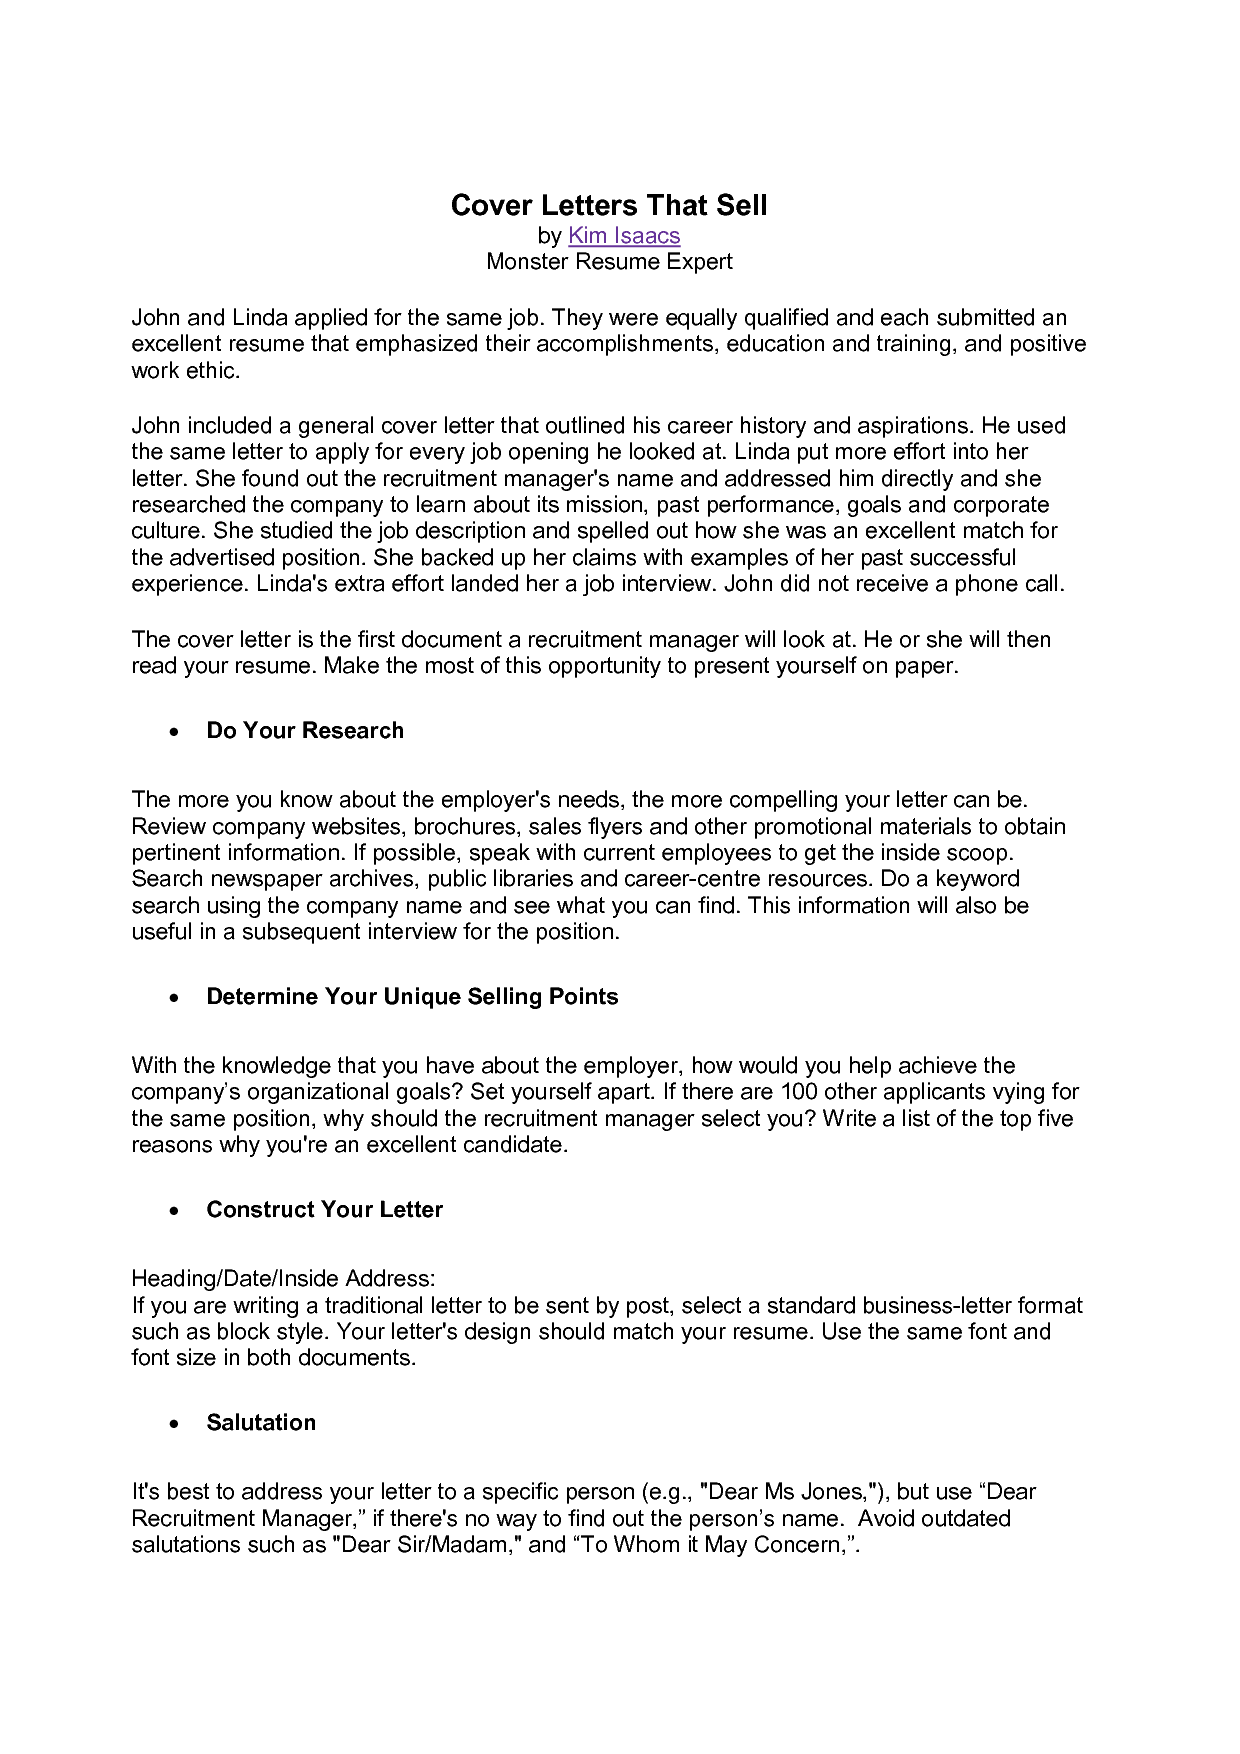 monster cover letter samples